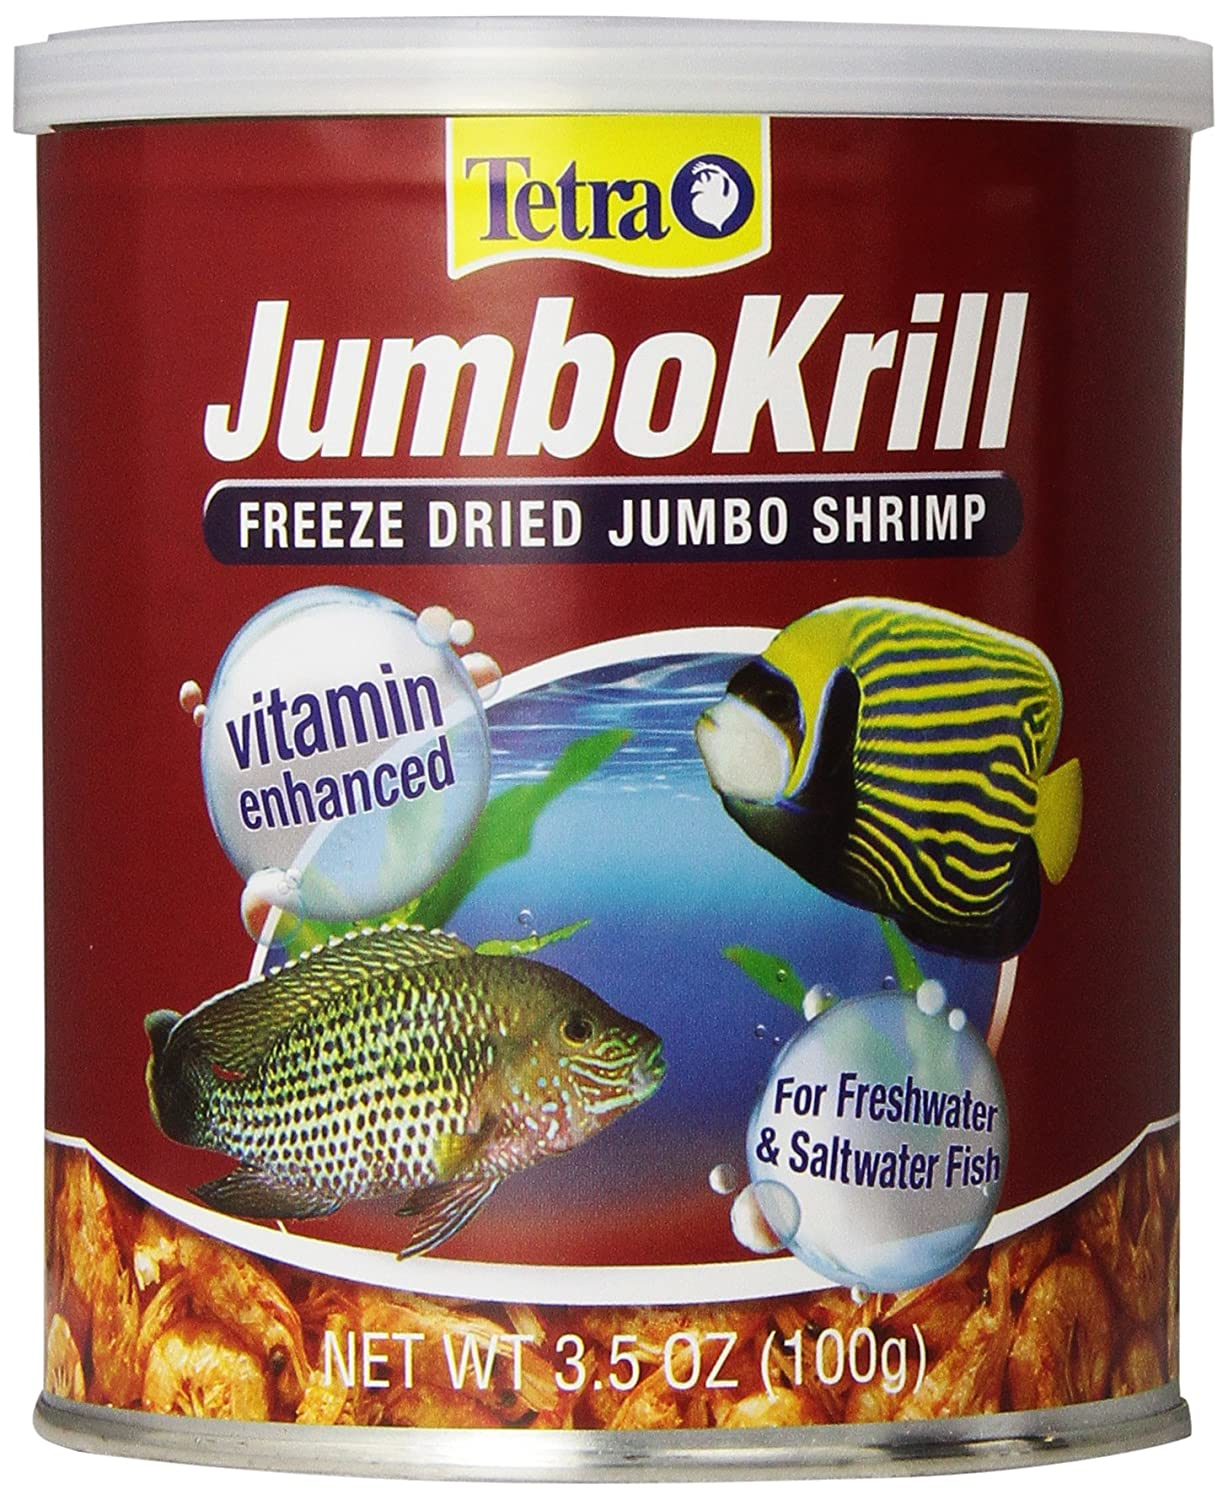 B00025K0YE Tetra JumboKrill Freeze Dired Jumbo Shrimp, Vitamin Enhanced 81mZXimariL